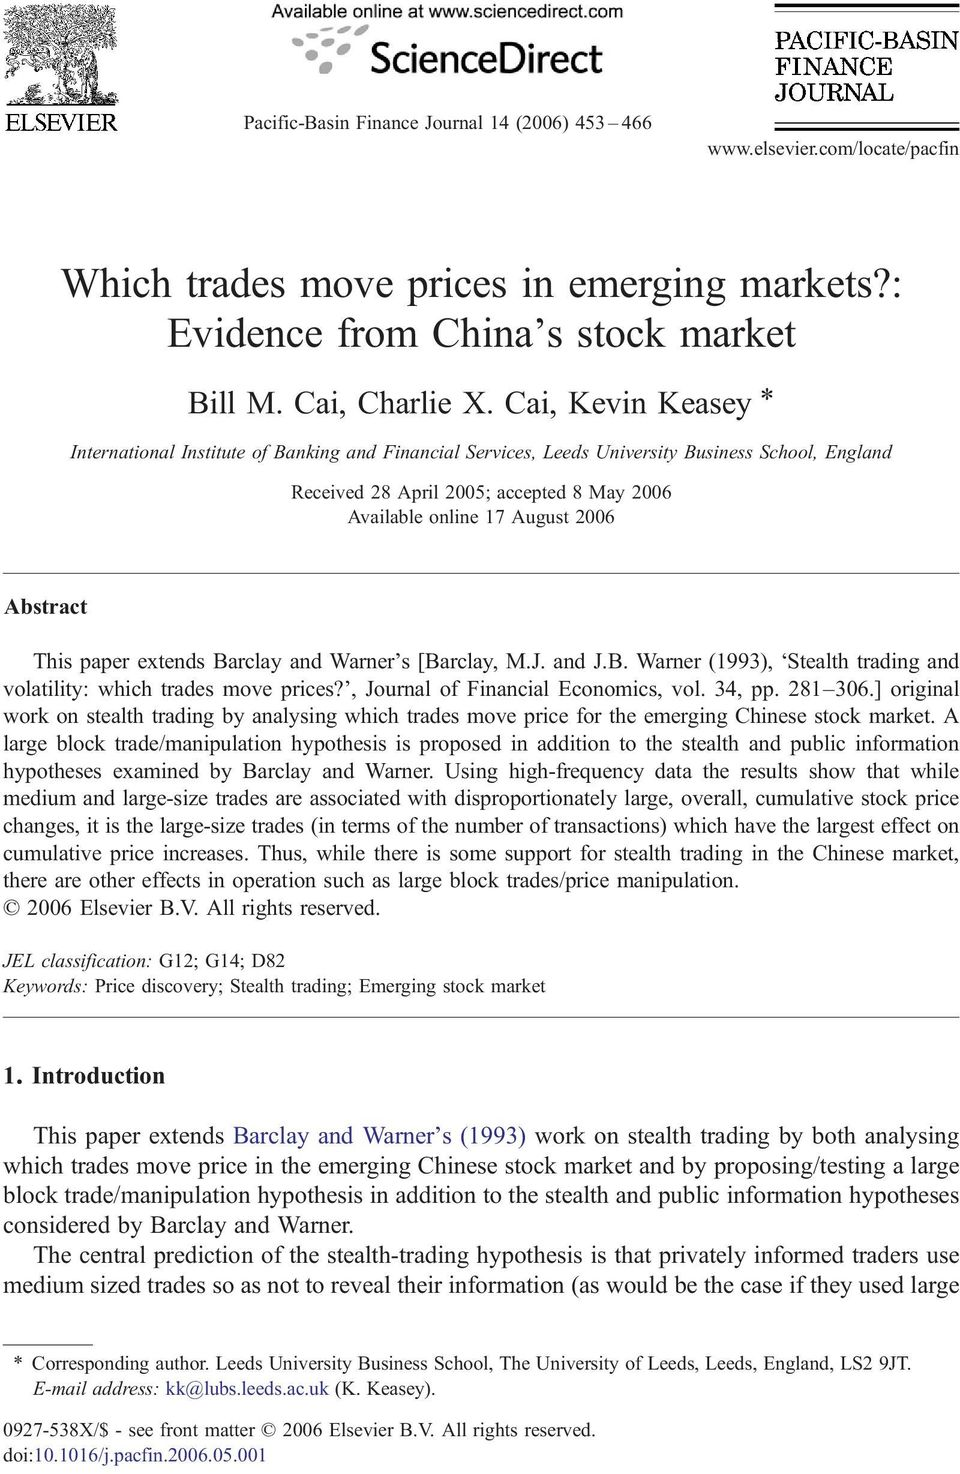 Abstract This paper extends Barclay and Warner's [Barclay, M.J. and J.B. Warner (1993), Stealth trading and volatility: which trades move prices?, Journal of Financial Economics, vol. 34, pp. 281 306.